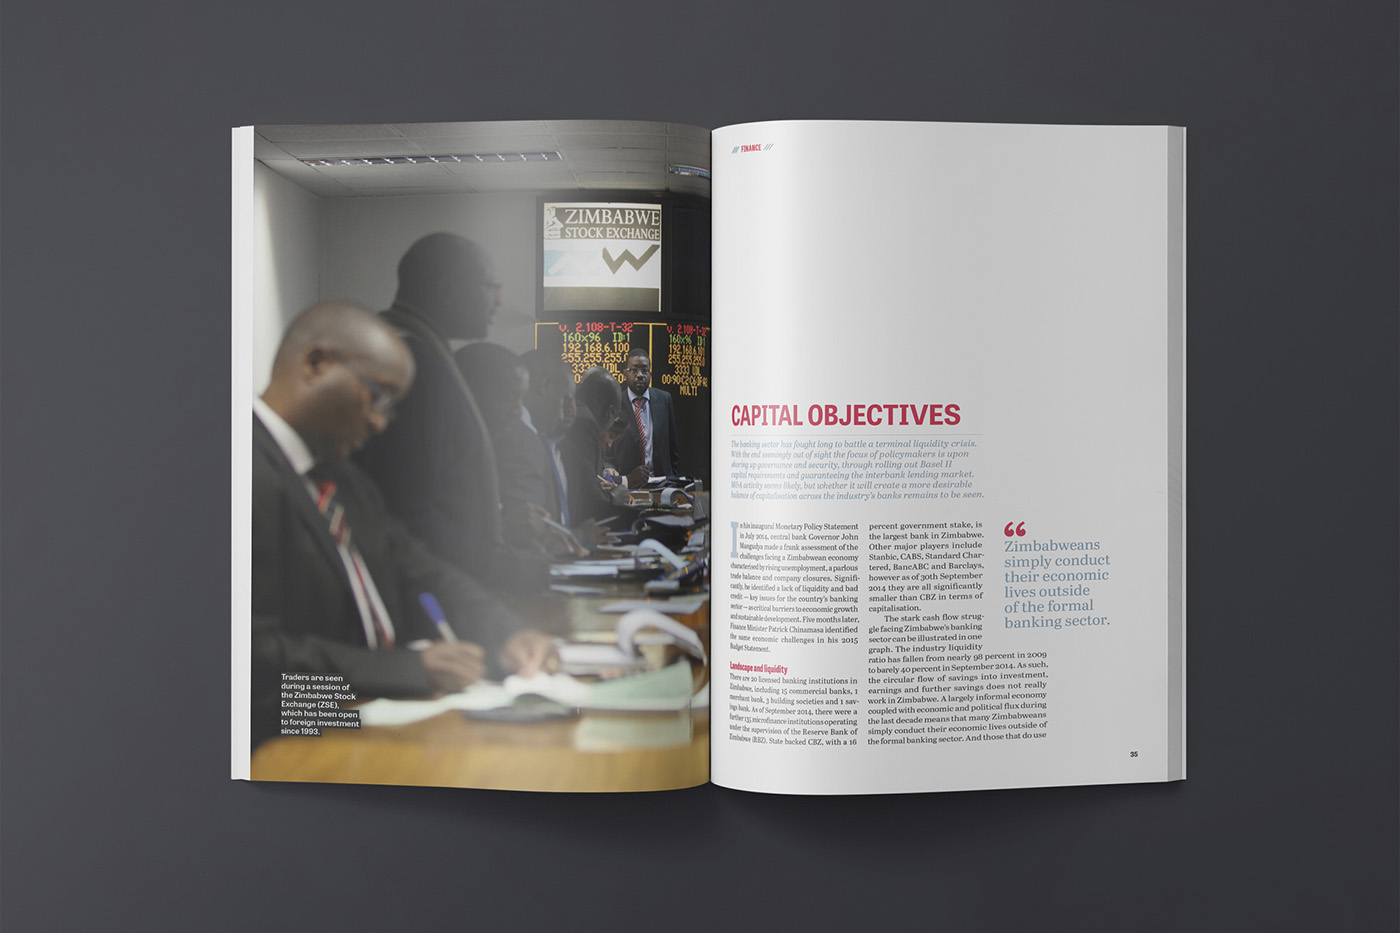 the zimbabwean economy essay Latest research from the world bank on development in zimbabwe, including reports, studies, publications, working papers and articles.